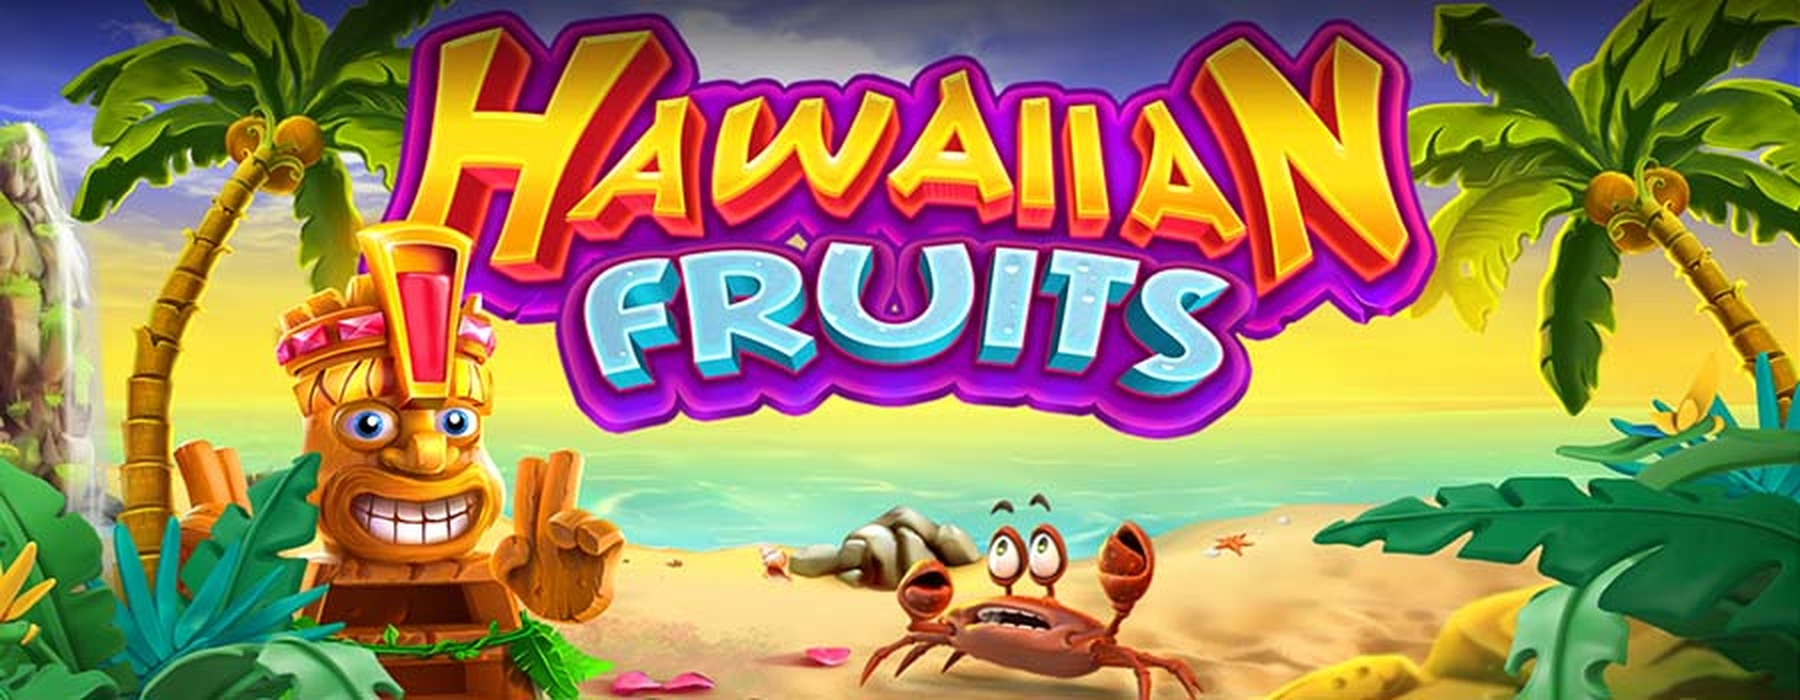 The Hawaiian Fruits Online Slot Demo Game by GameArt